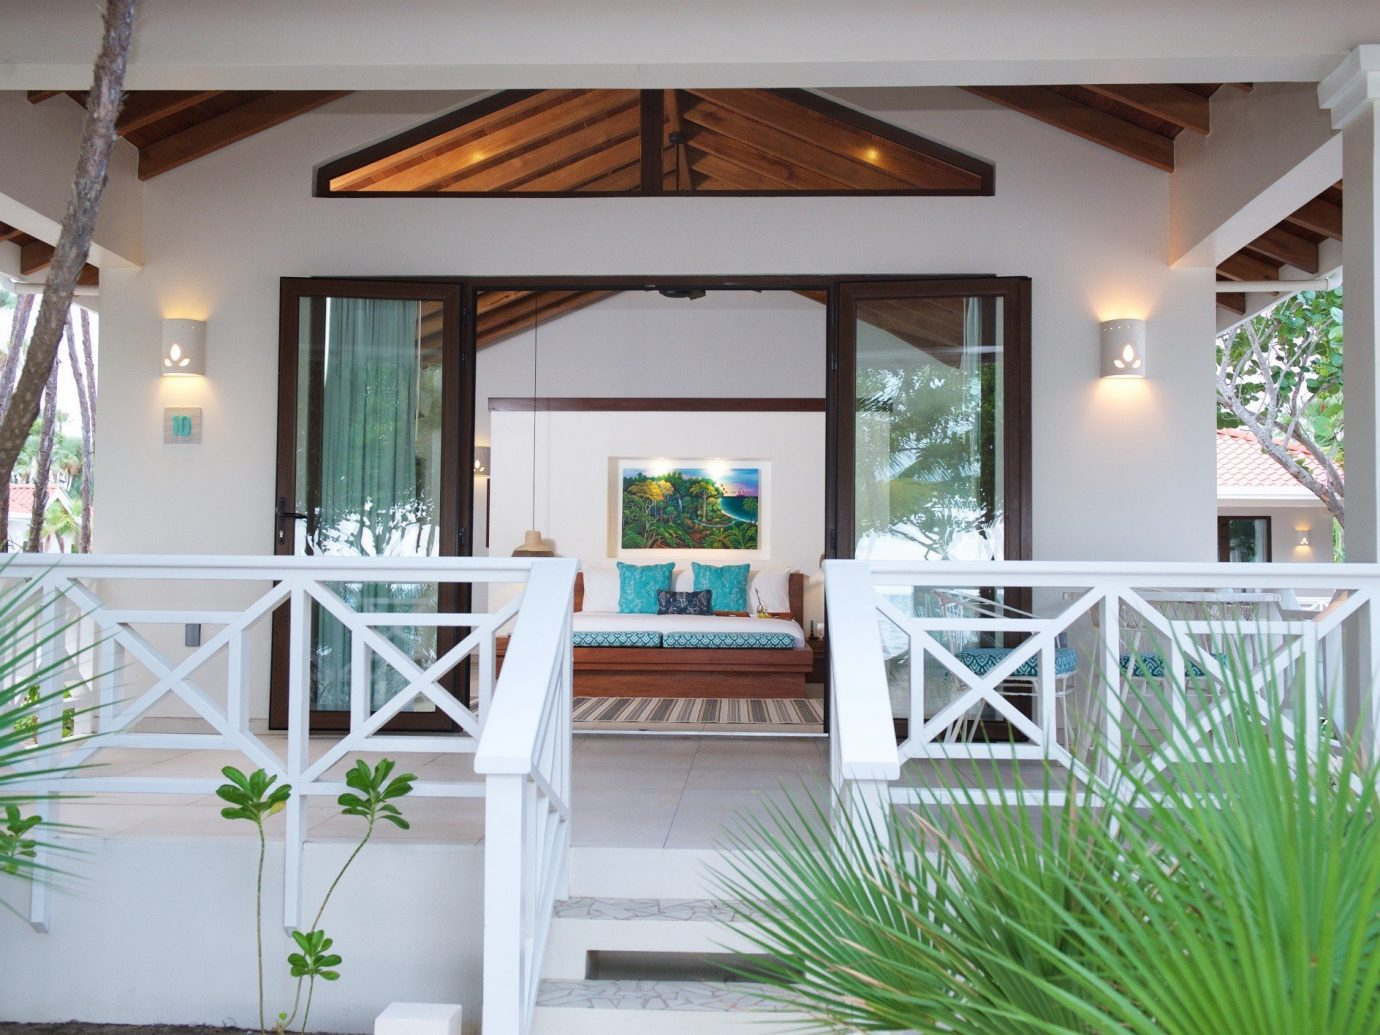 Hotels Trip Ideas plant property building room porch home estate house living room ceiling outdoor structure real estate interior design dining room Villa cottage condominium Design window farmhouse mansion furniture decorated